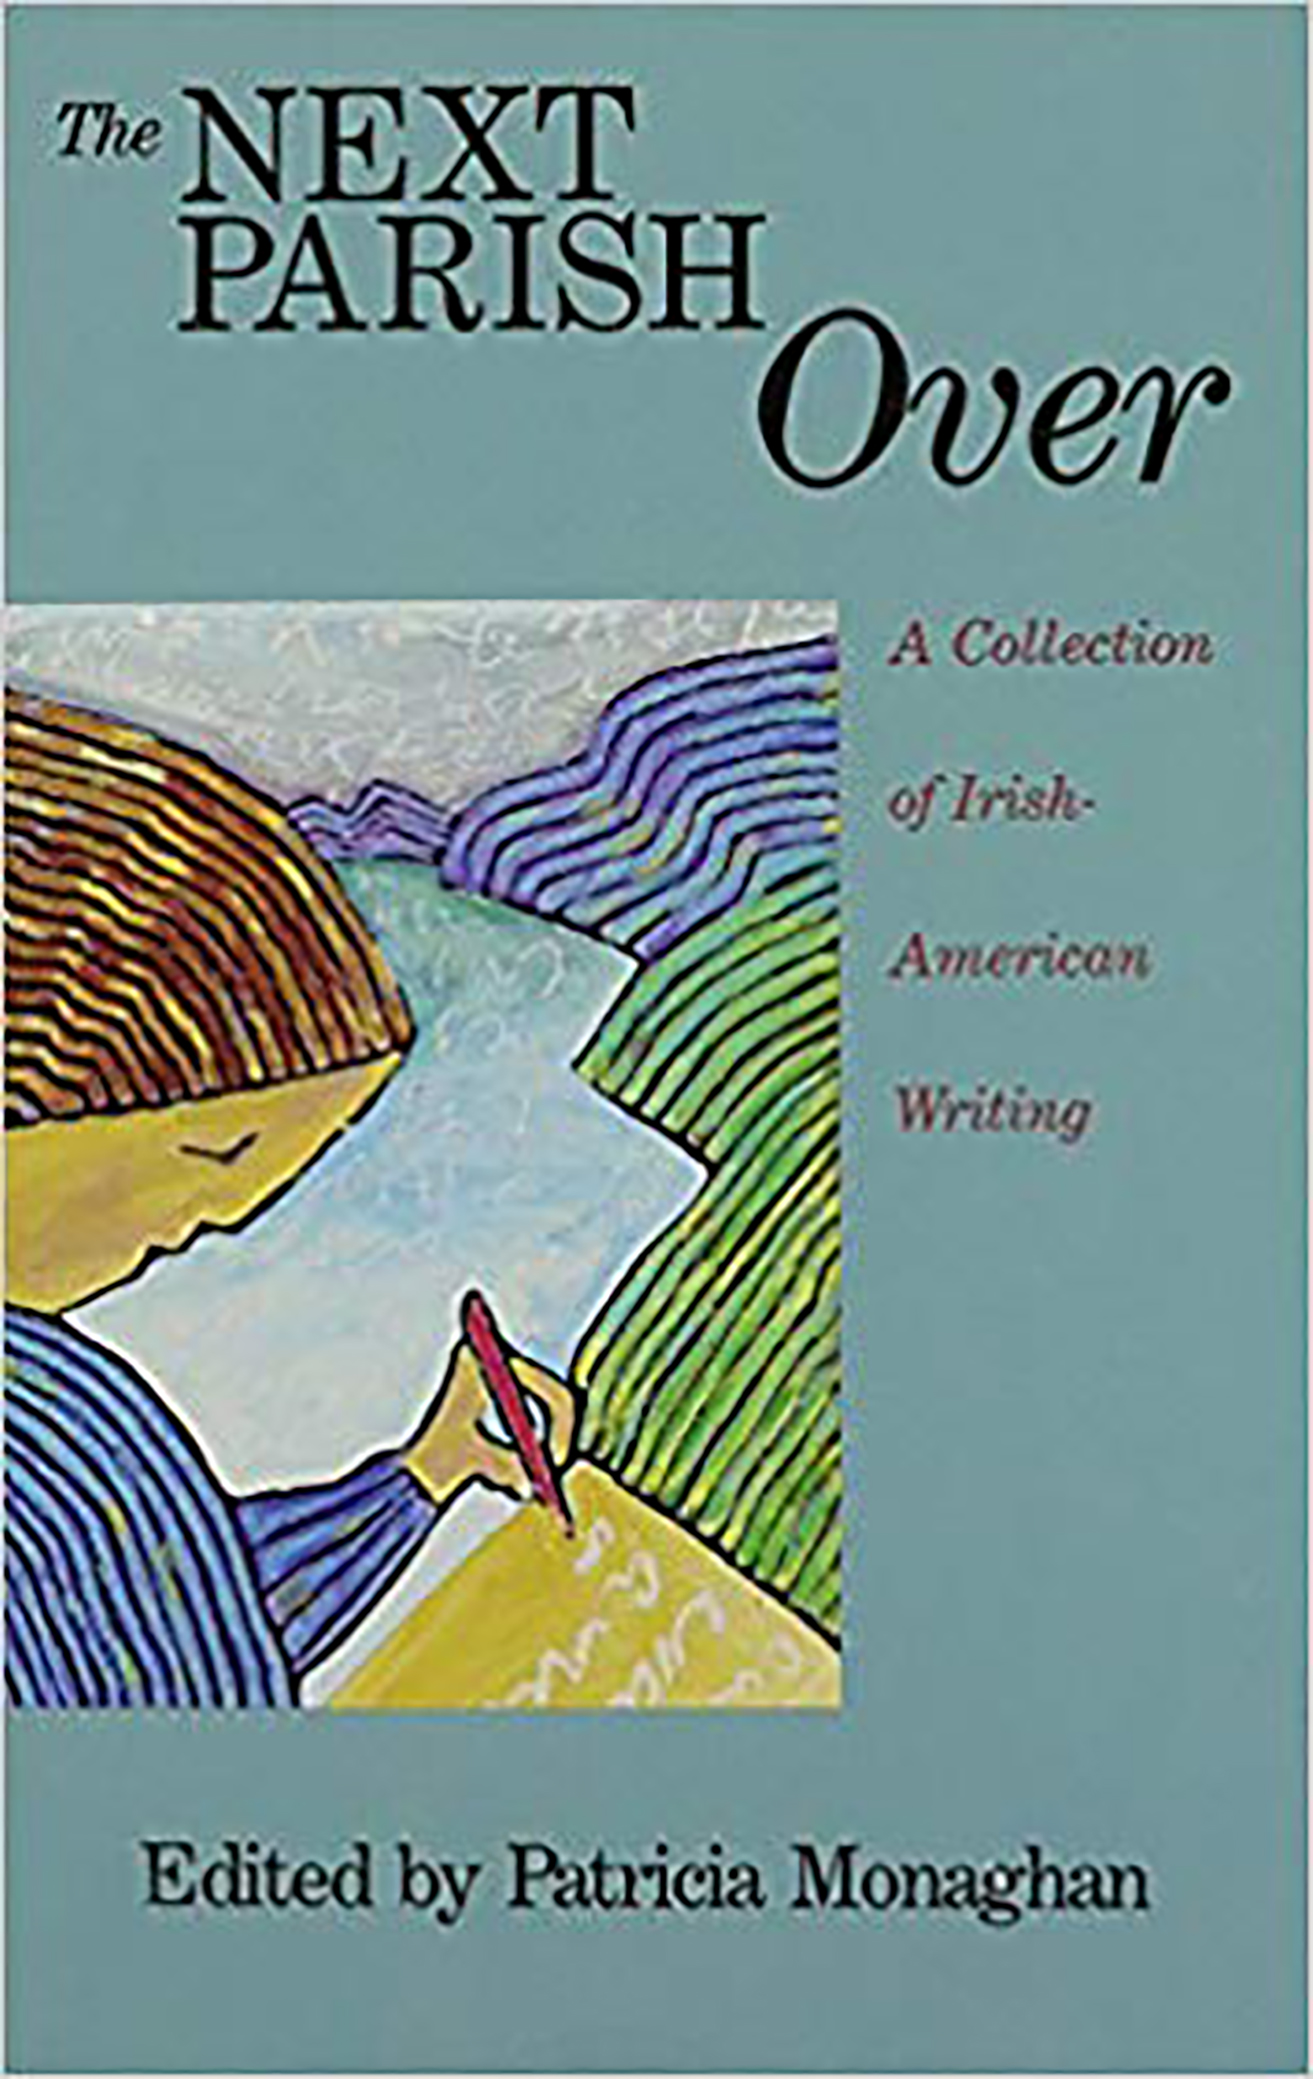 THE NEXT PARISH OVER: A COLLECTION OF IRISH-AMERICAN WRITING